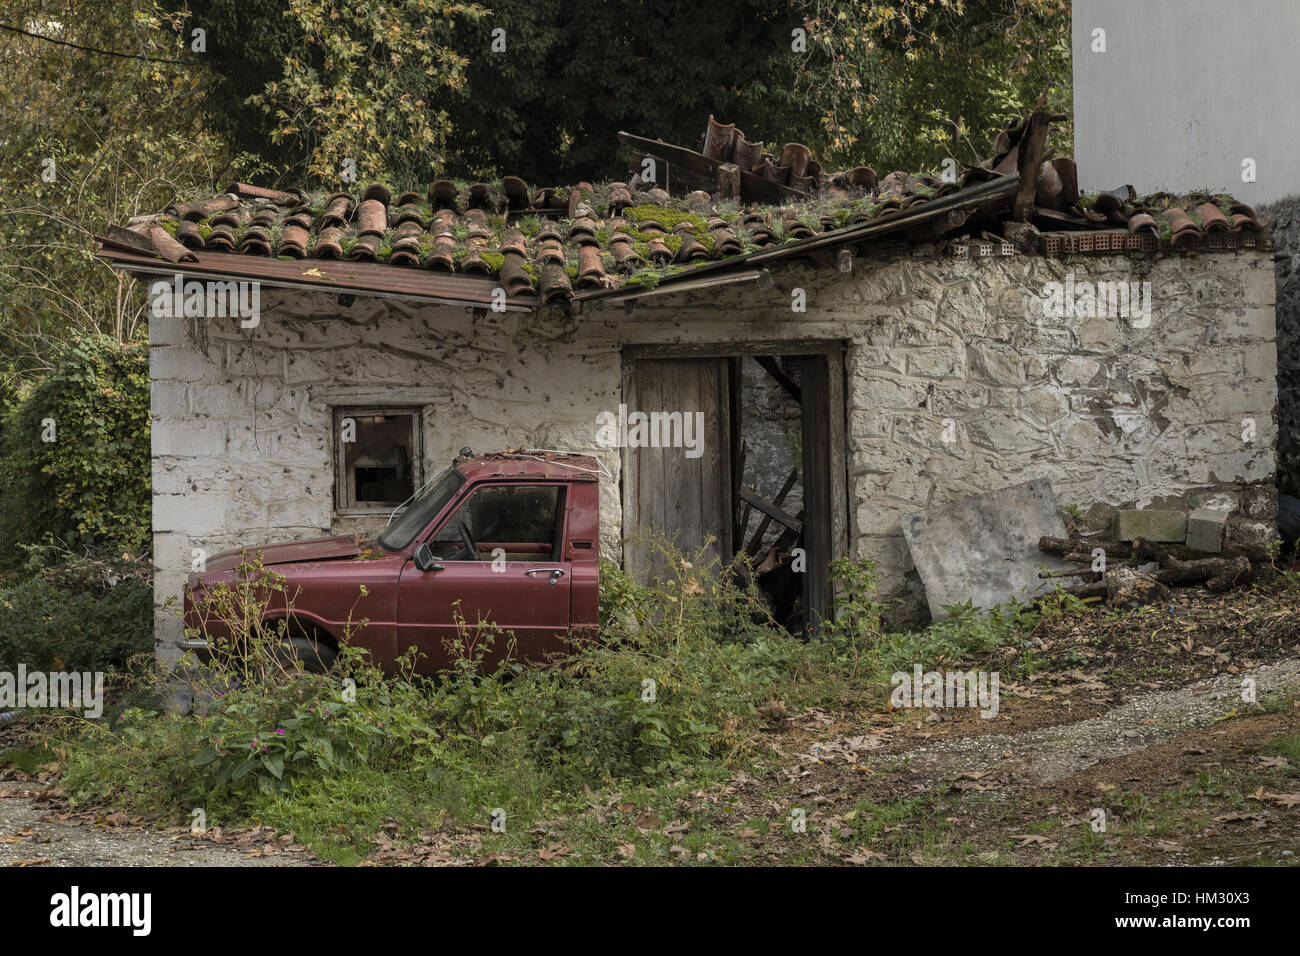 Derelict cottage with half a car outside; Meteora, Greece - Stock Image